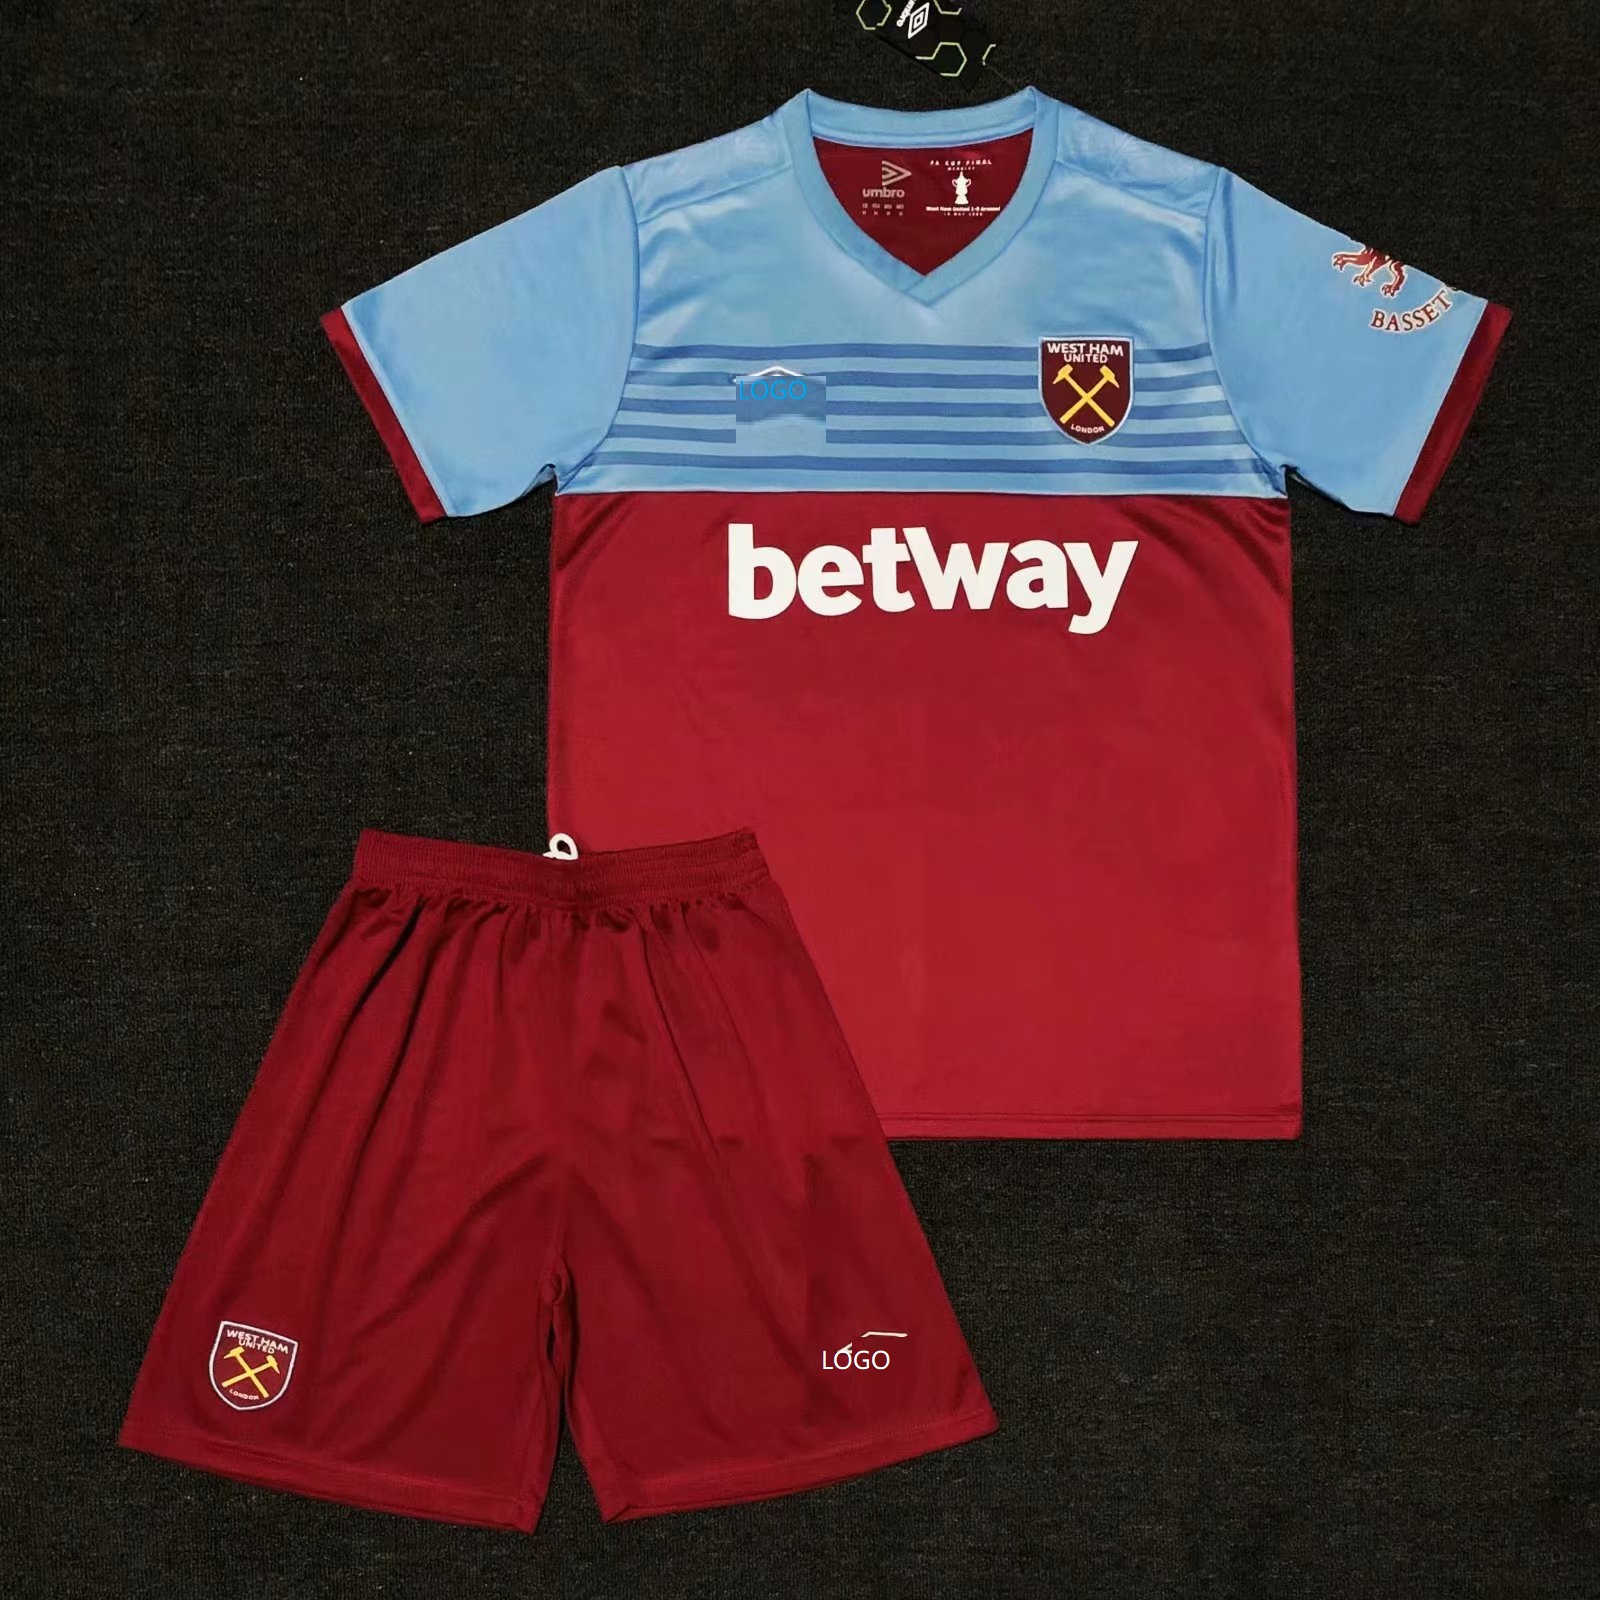 buy online a7797 cc436 2019/20 Adult thai quality West Ham home soccer/football uniforms/kits